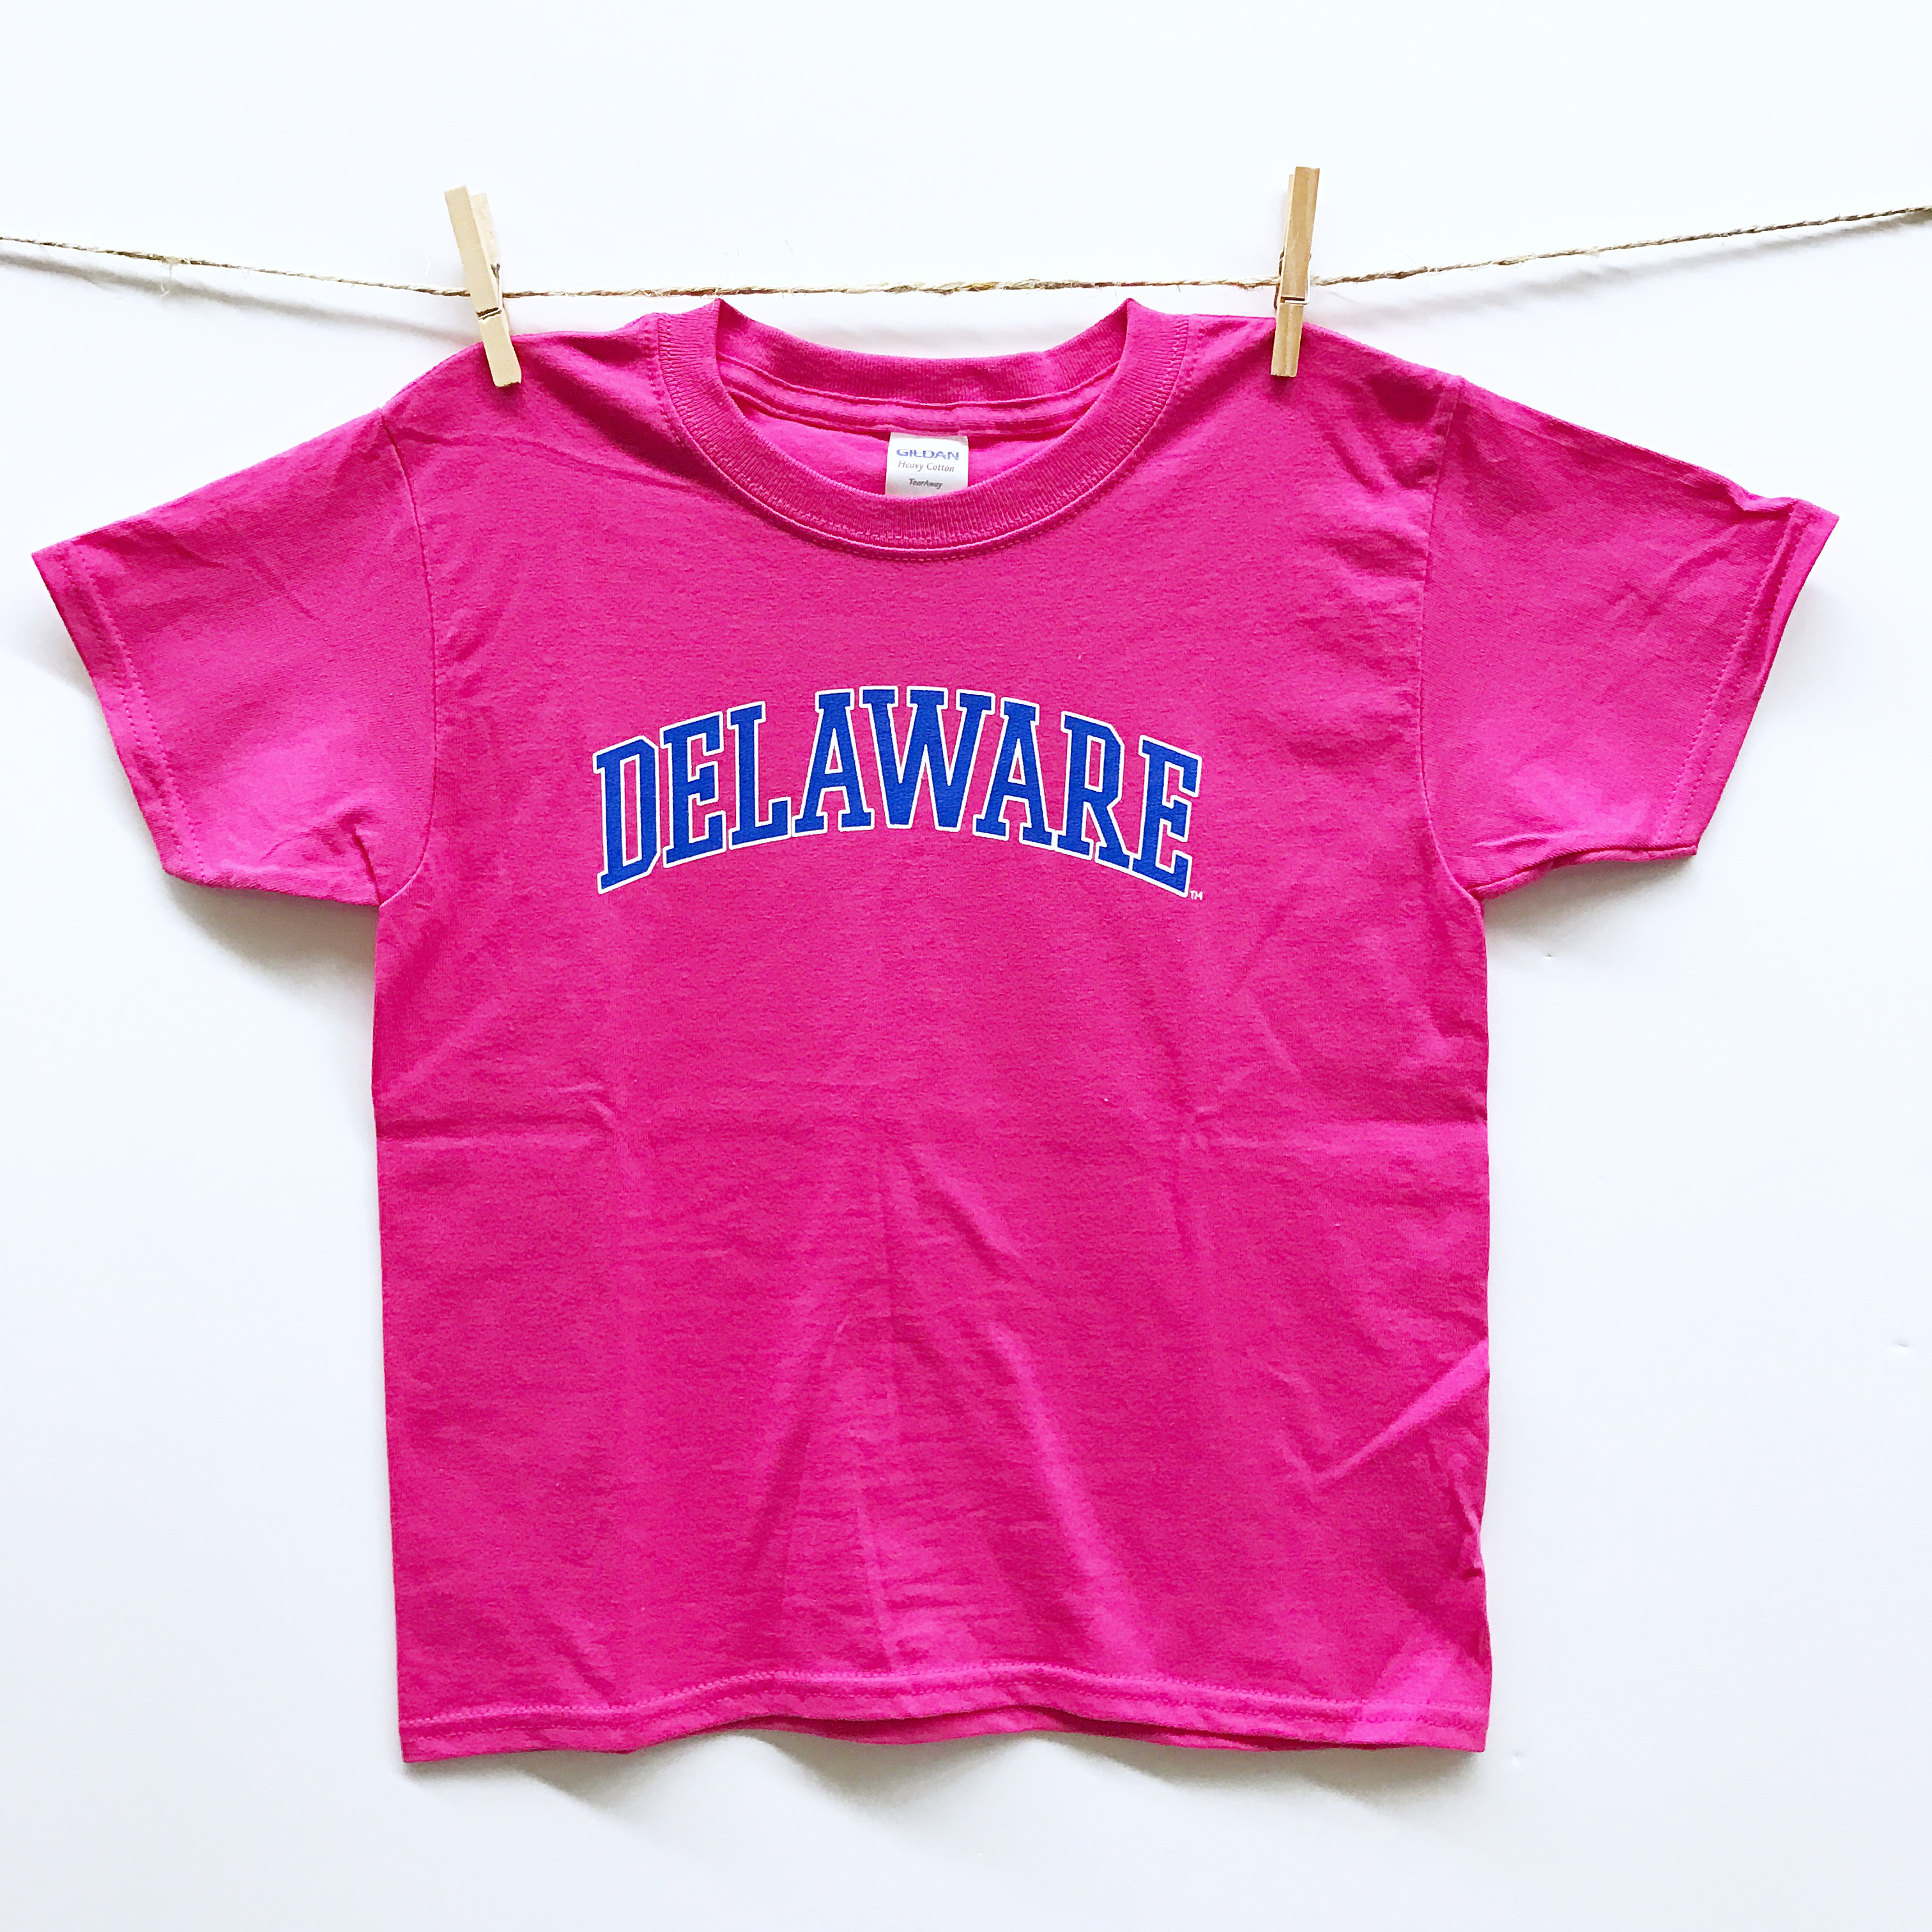 0158ada85 University of Delaware Youth Arched Delaware T-shirt – Pink ...